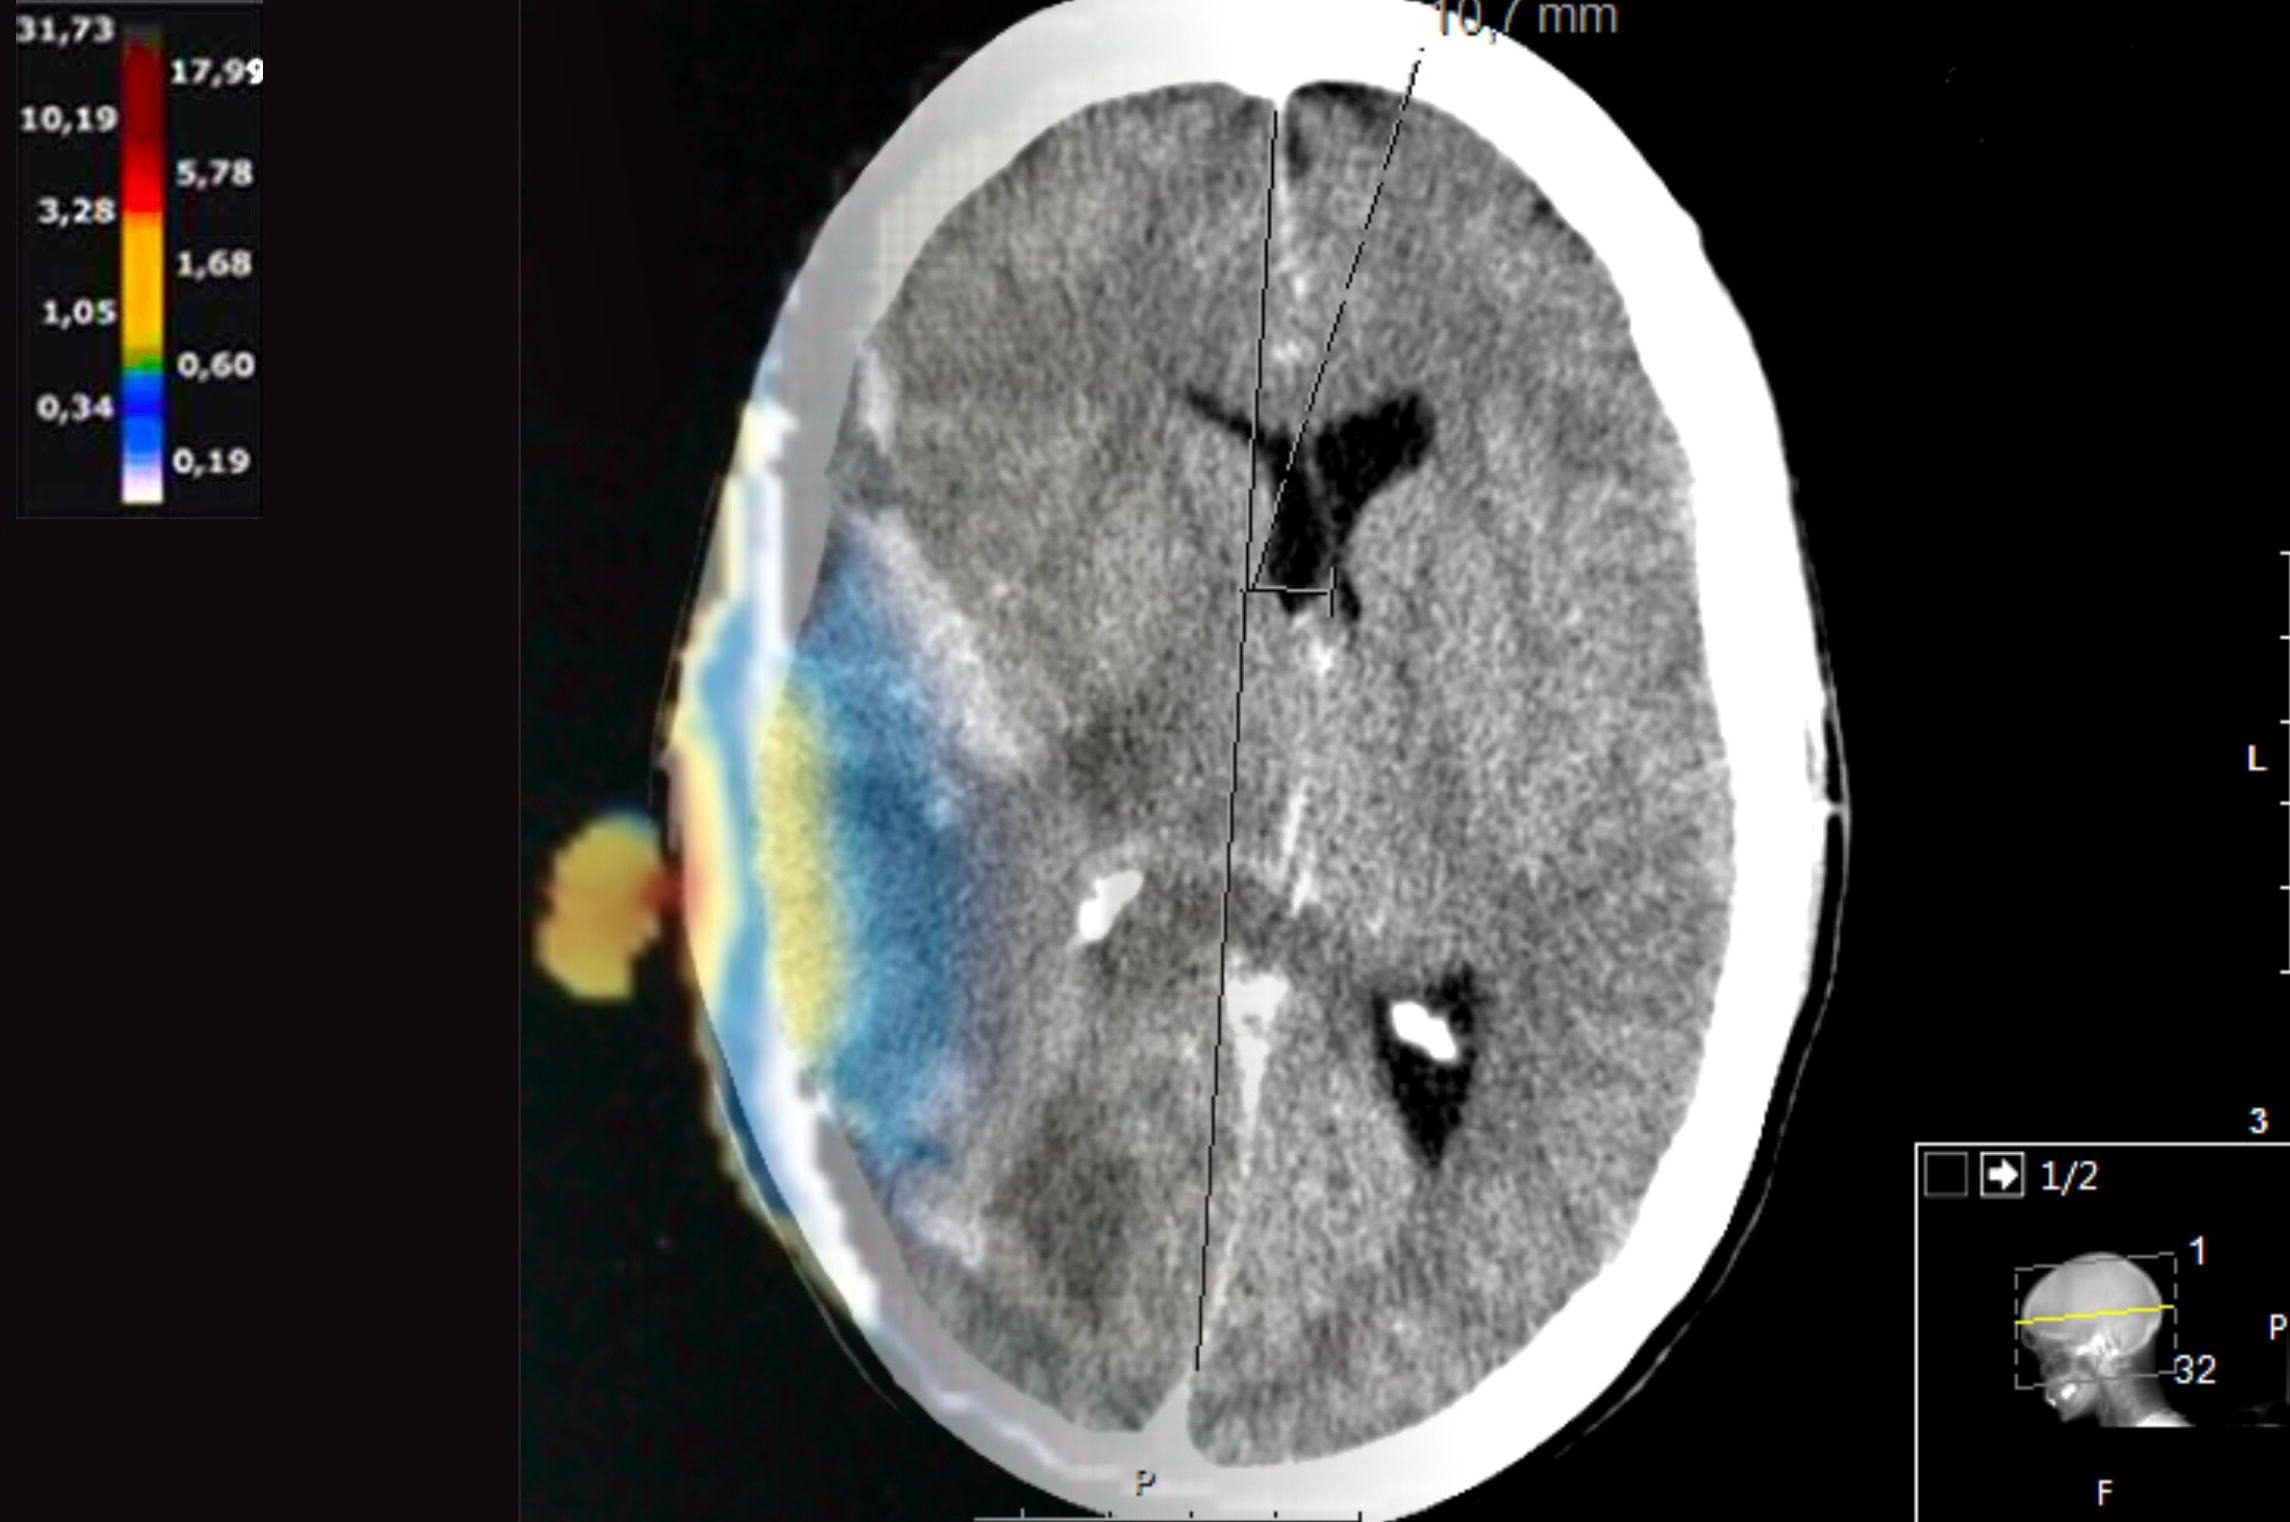 Central nervous system lymphoma and radiofrequency radiation – a case report and incidence data in the Swedish Cancer Register, Smombie Gate | 5G | EMF